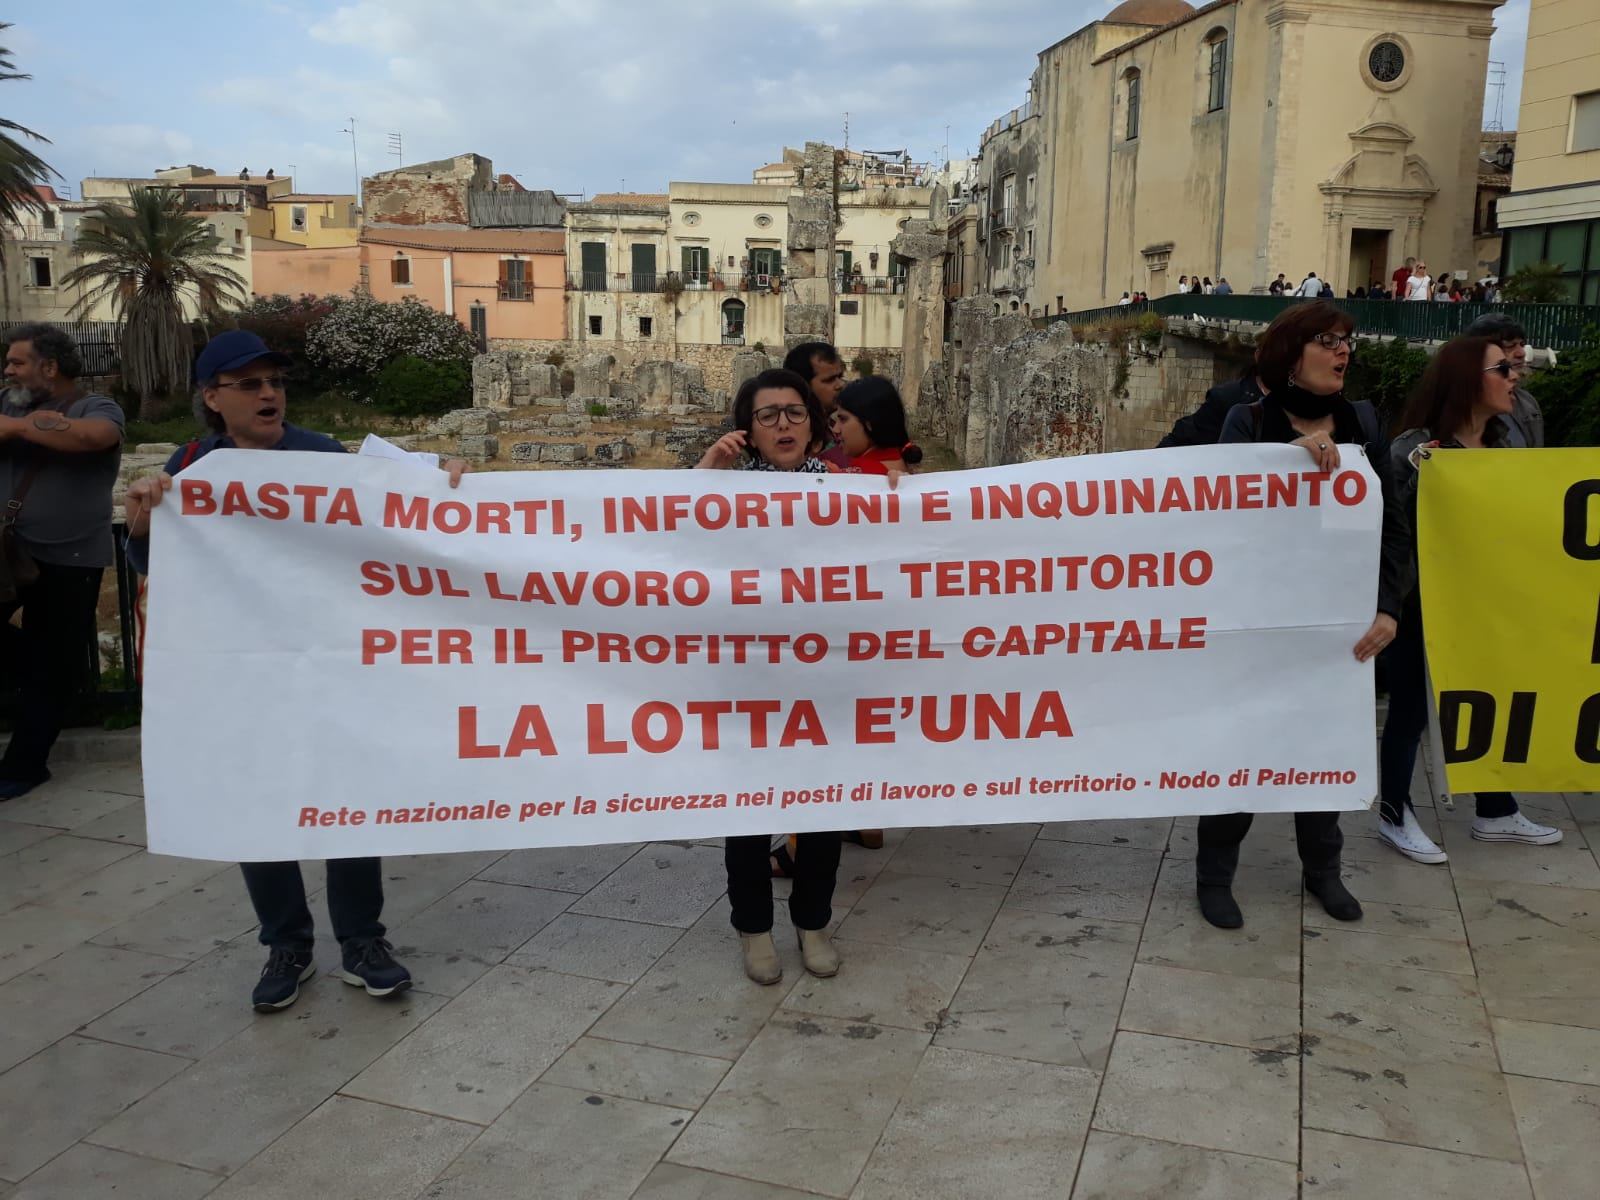 BASTA MORTI, INFORTUNI, INQUINAMENTO